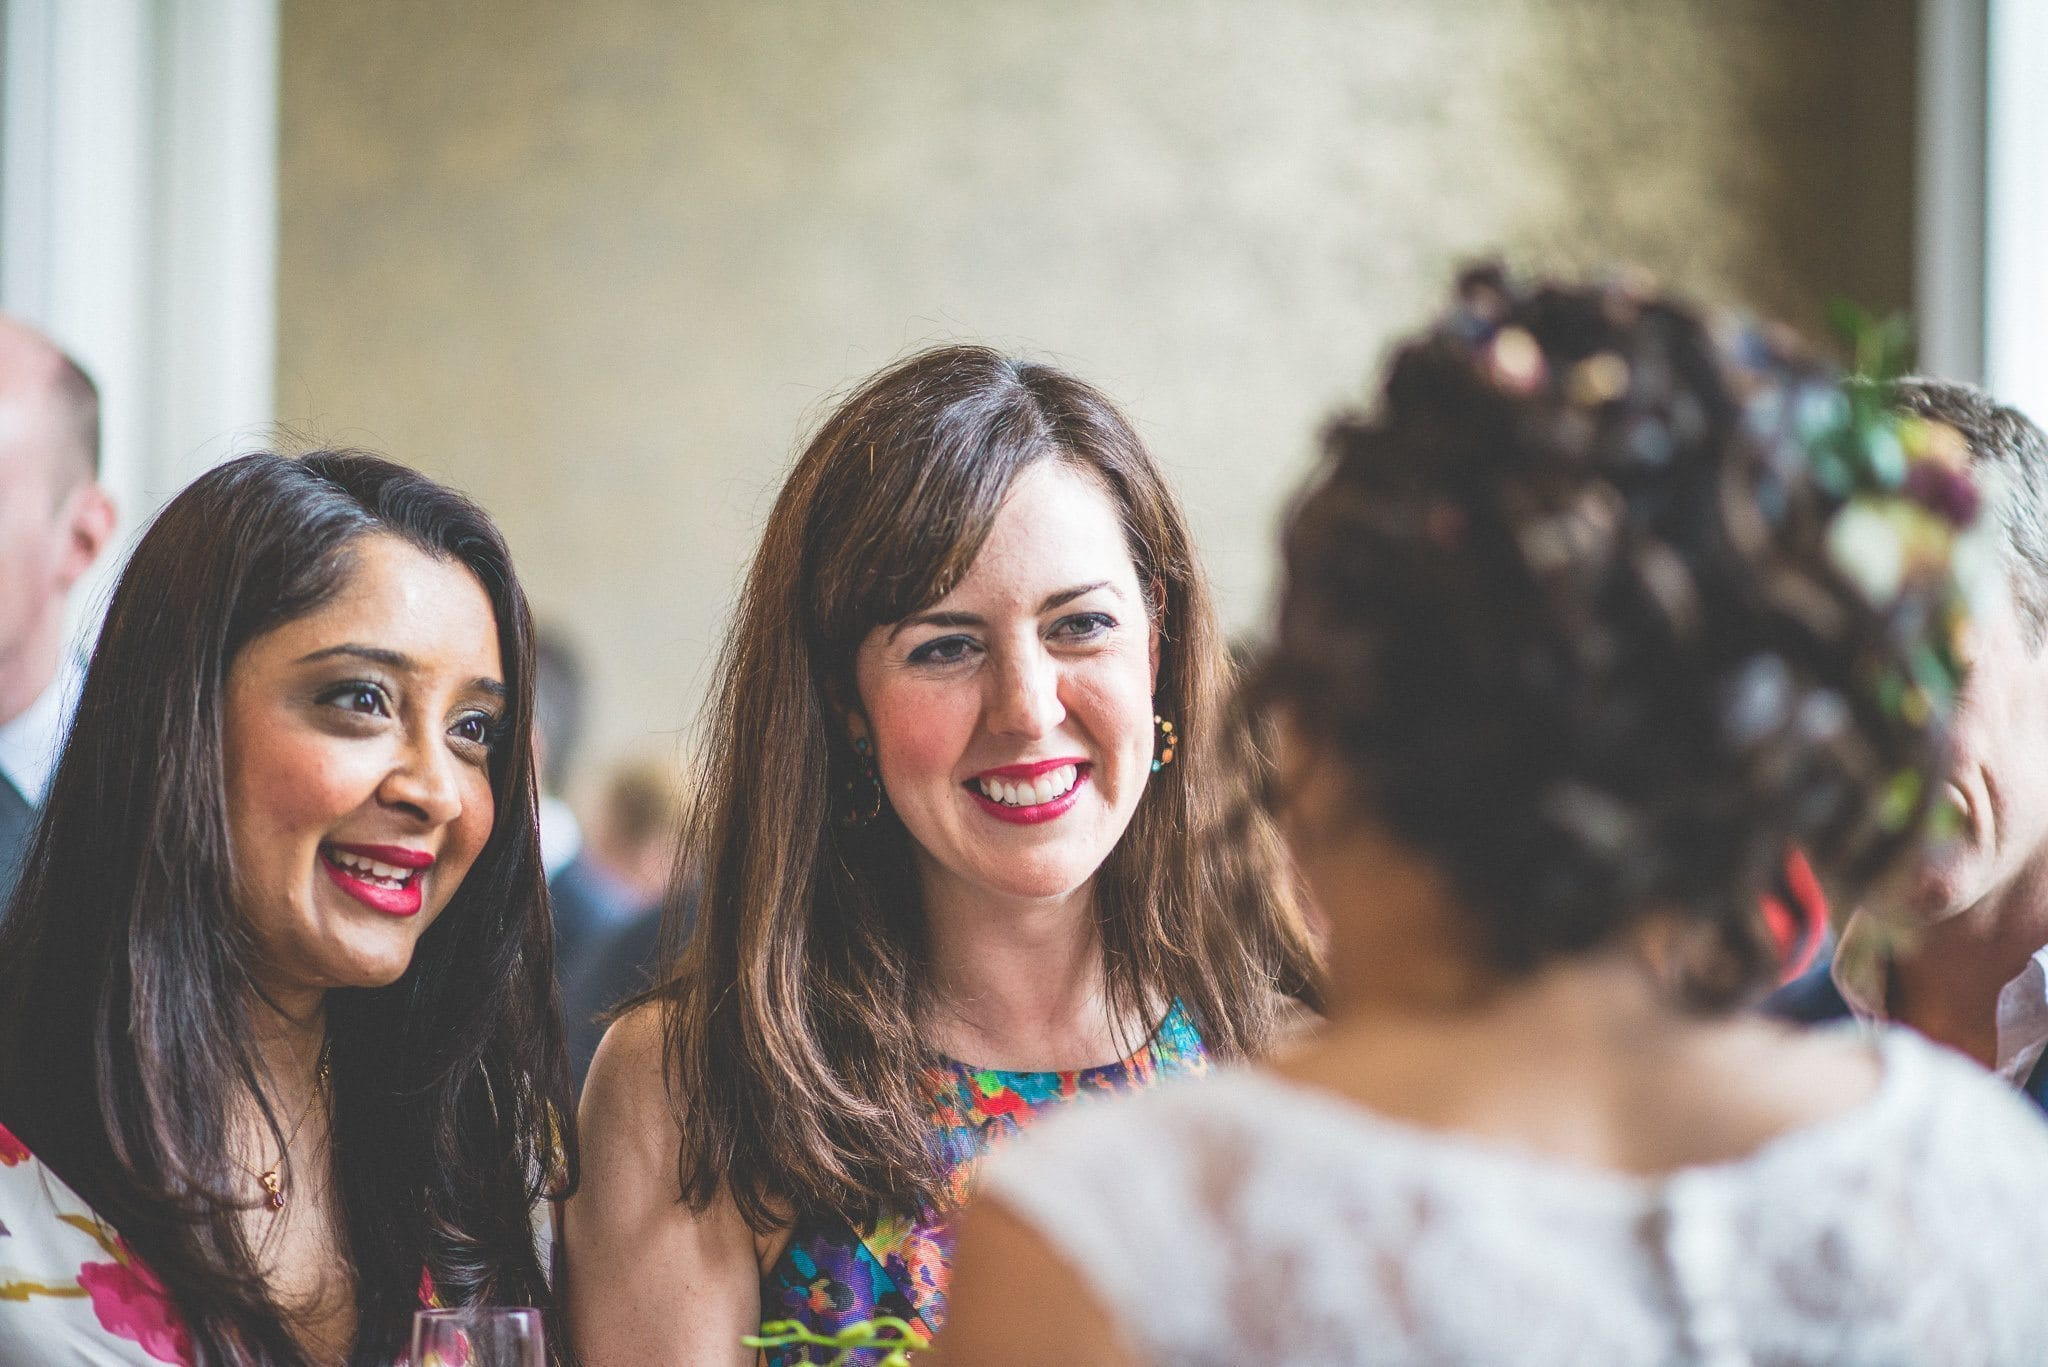 Two guests in bright floral dresses chat to the bride